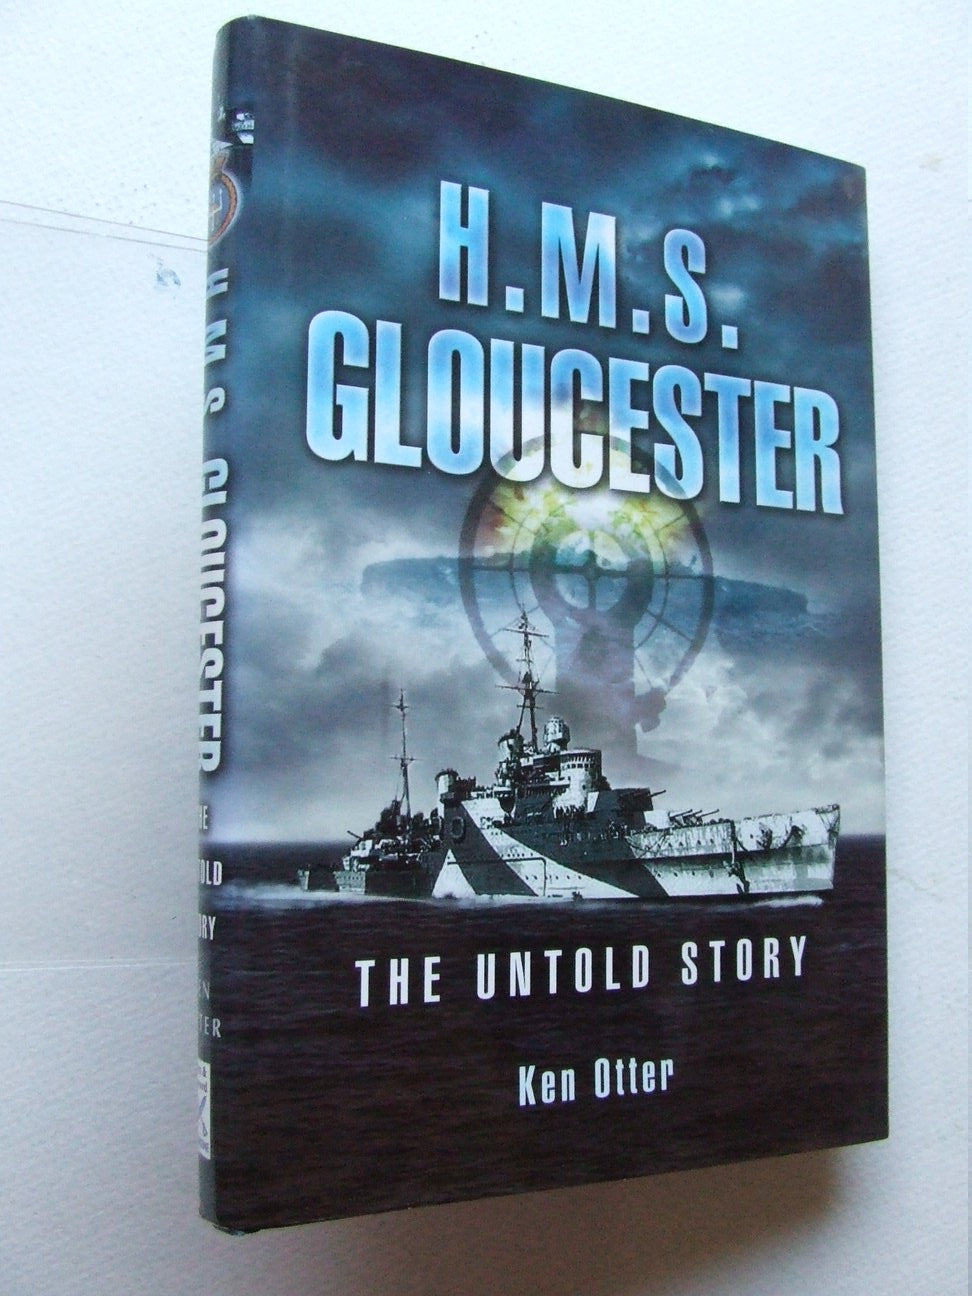 HMS Gloucester, the untold story